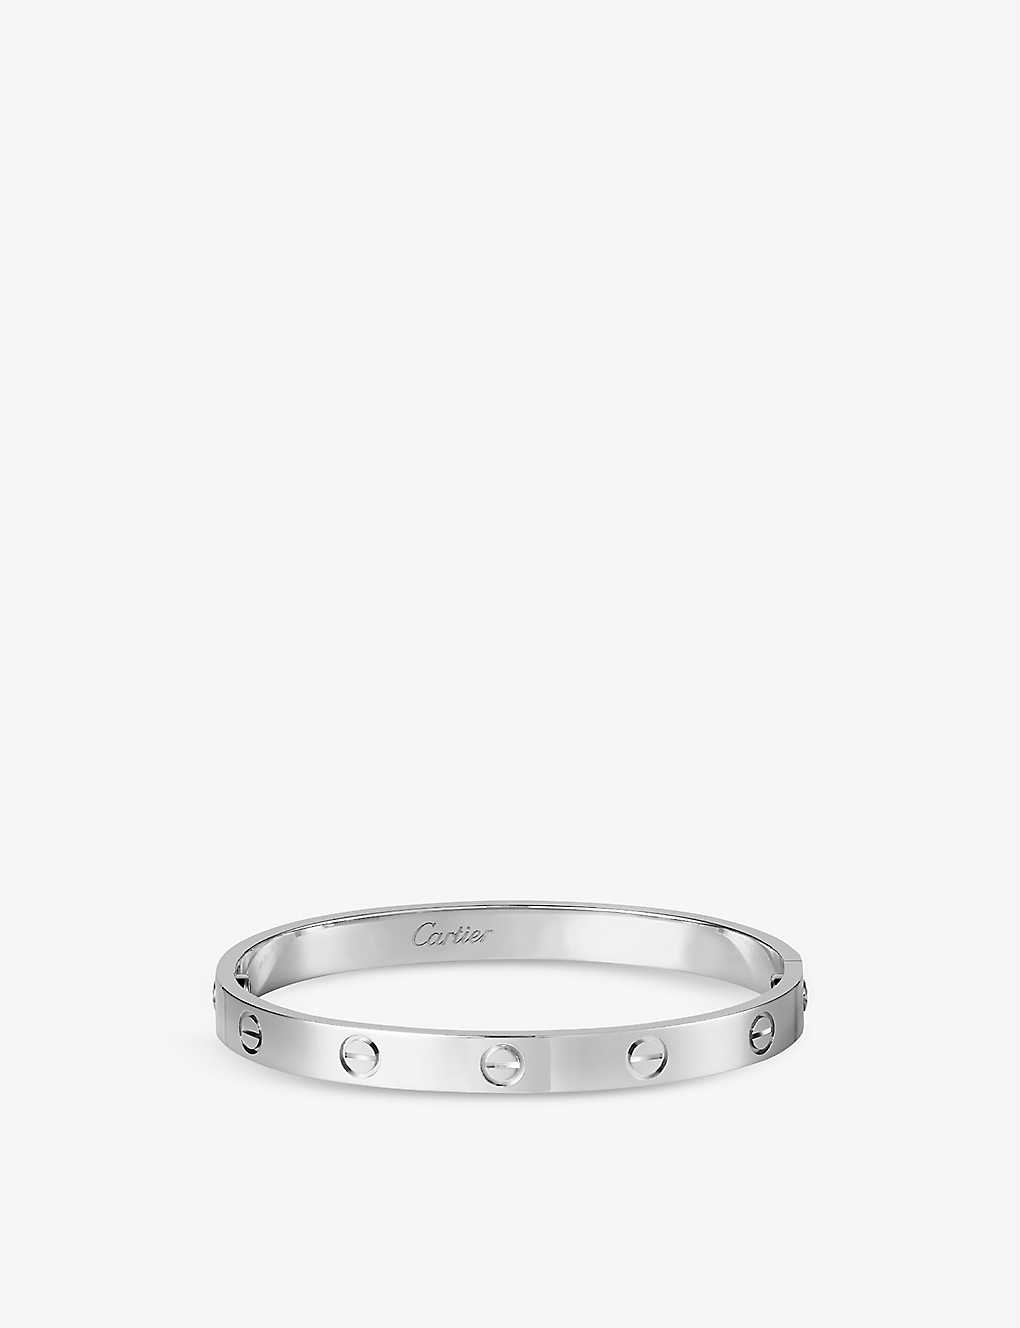 CARTIER: LOVE 18ct white-gold bracelet